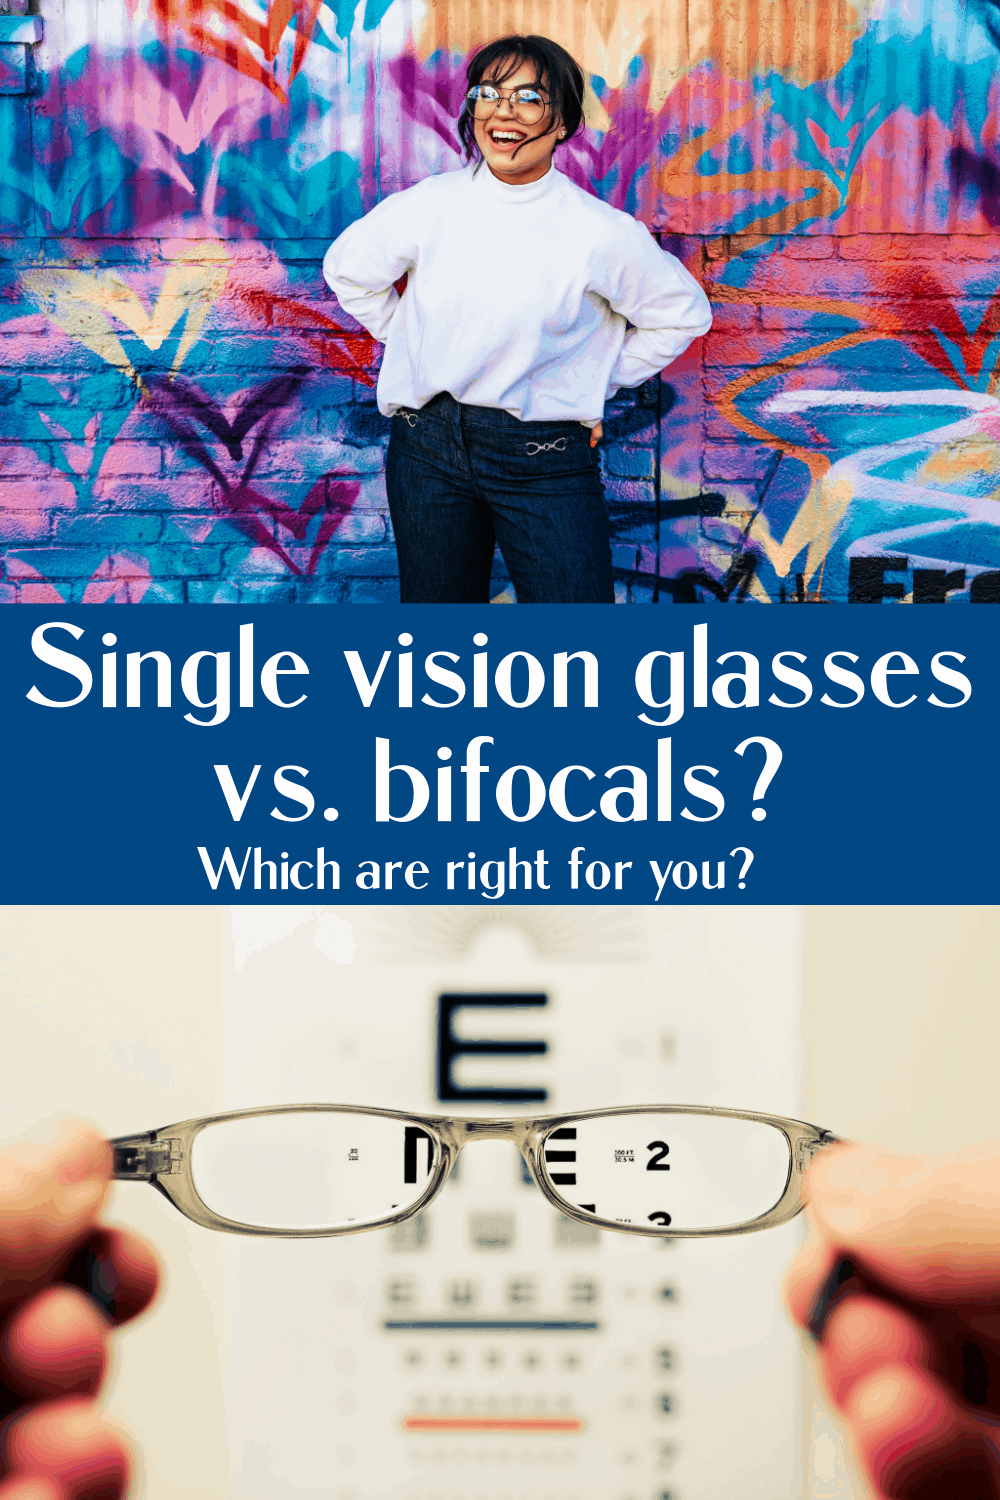 Single vision glasses vs. bifocals? Which are right for you?